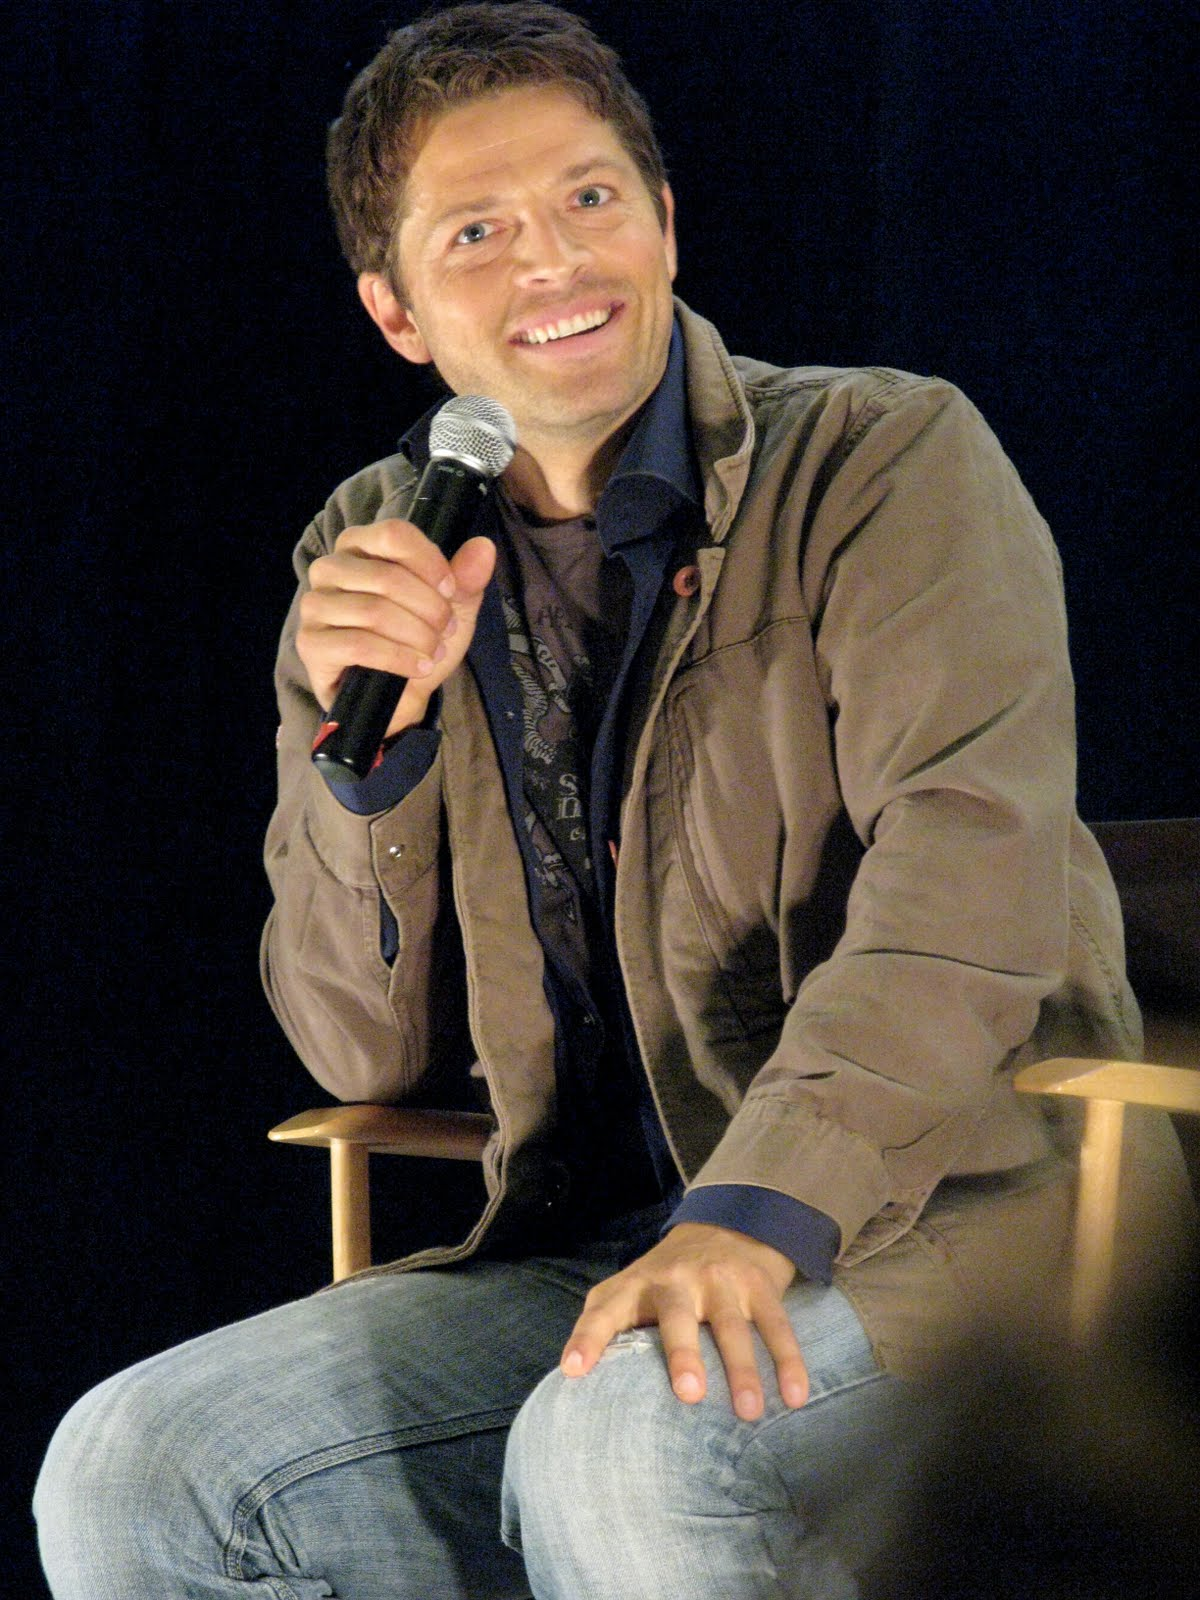 when misha left and the room refilled with oxygen demore barnes raphael took the stage for his first convention appearance